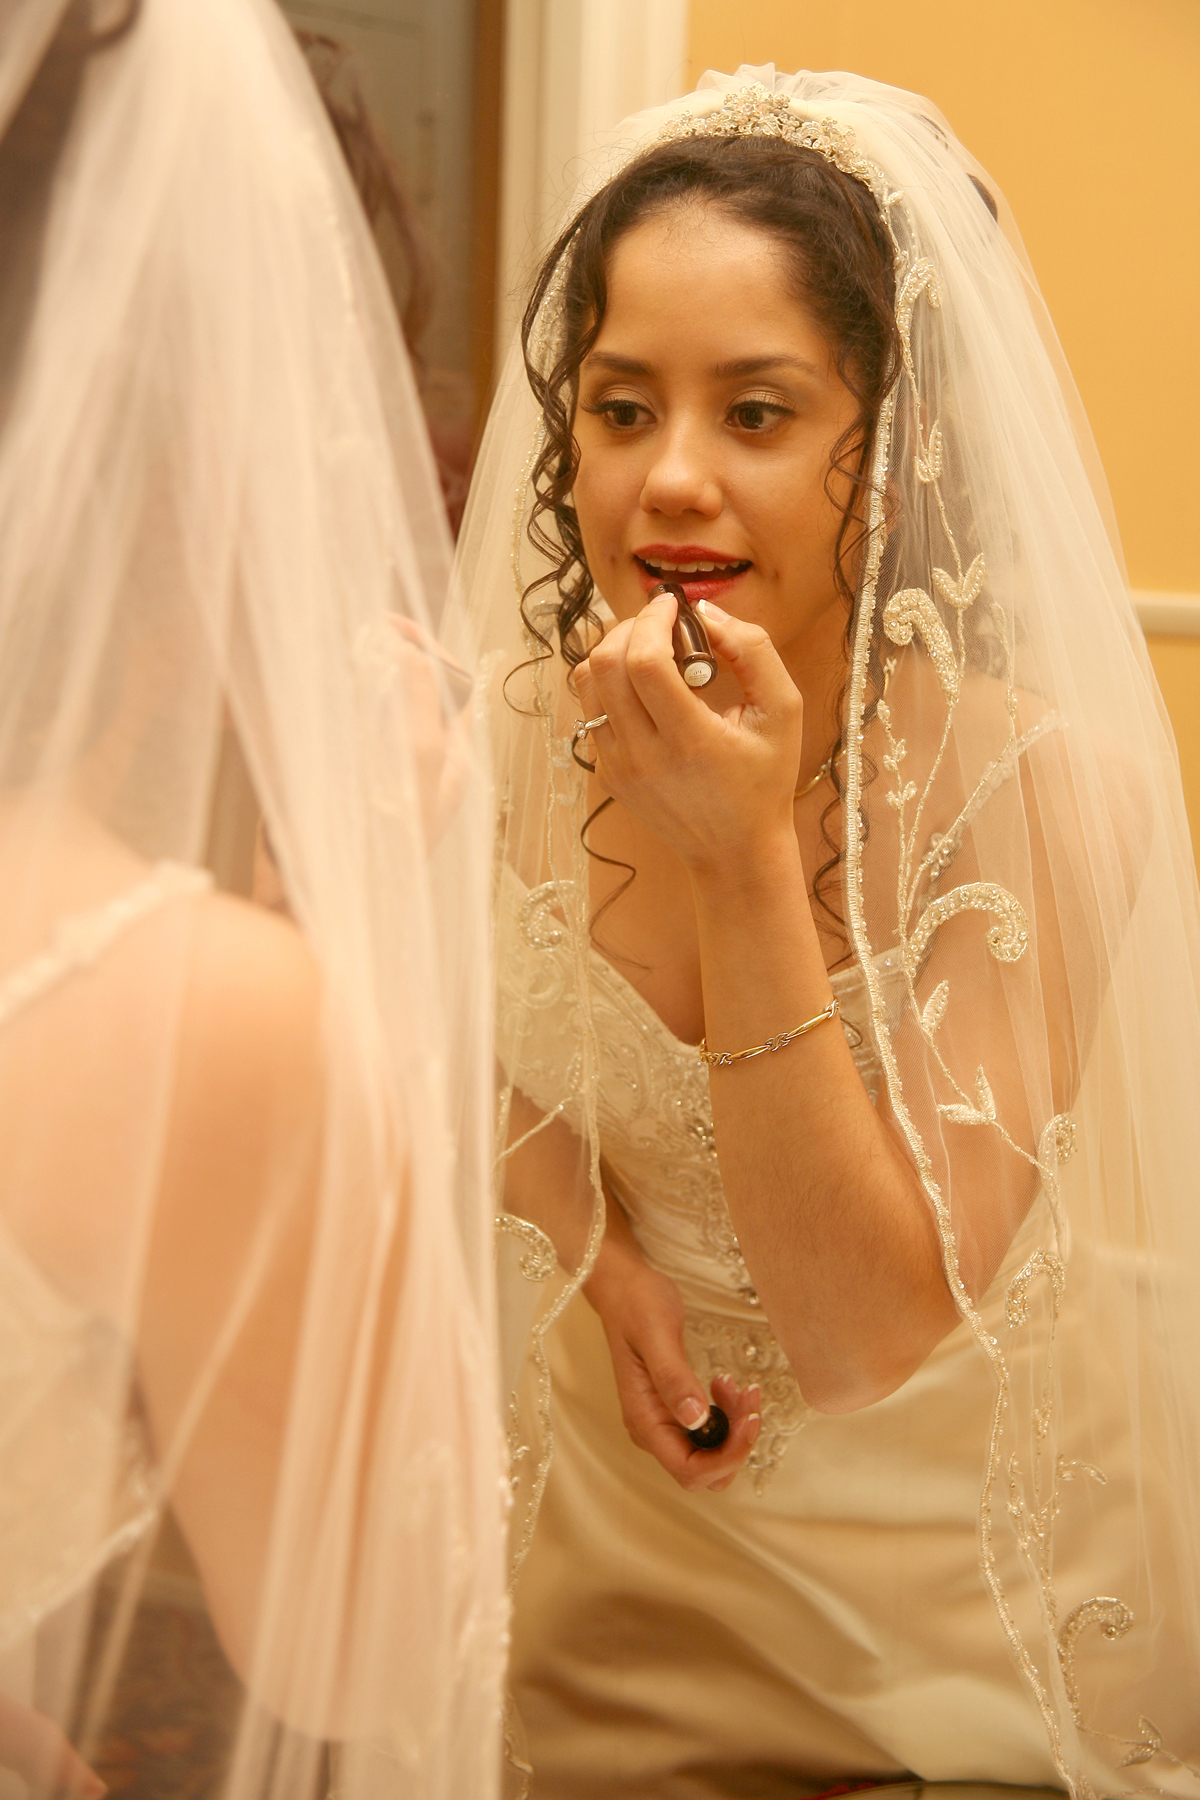 Veils, Fashion, Veil, Up, Make, Event professionals